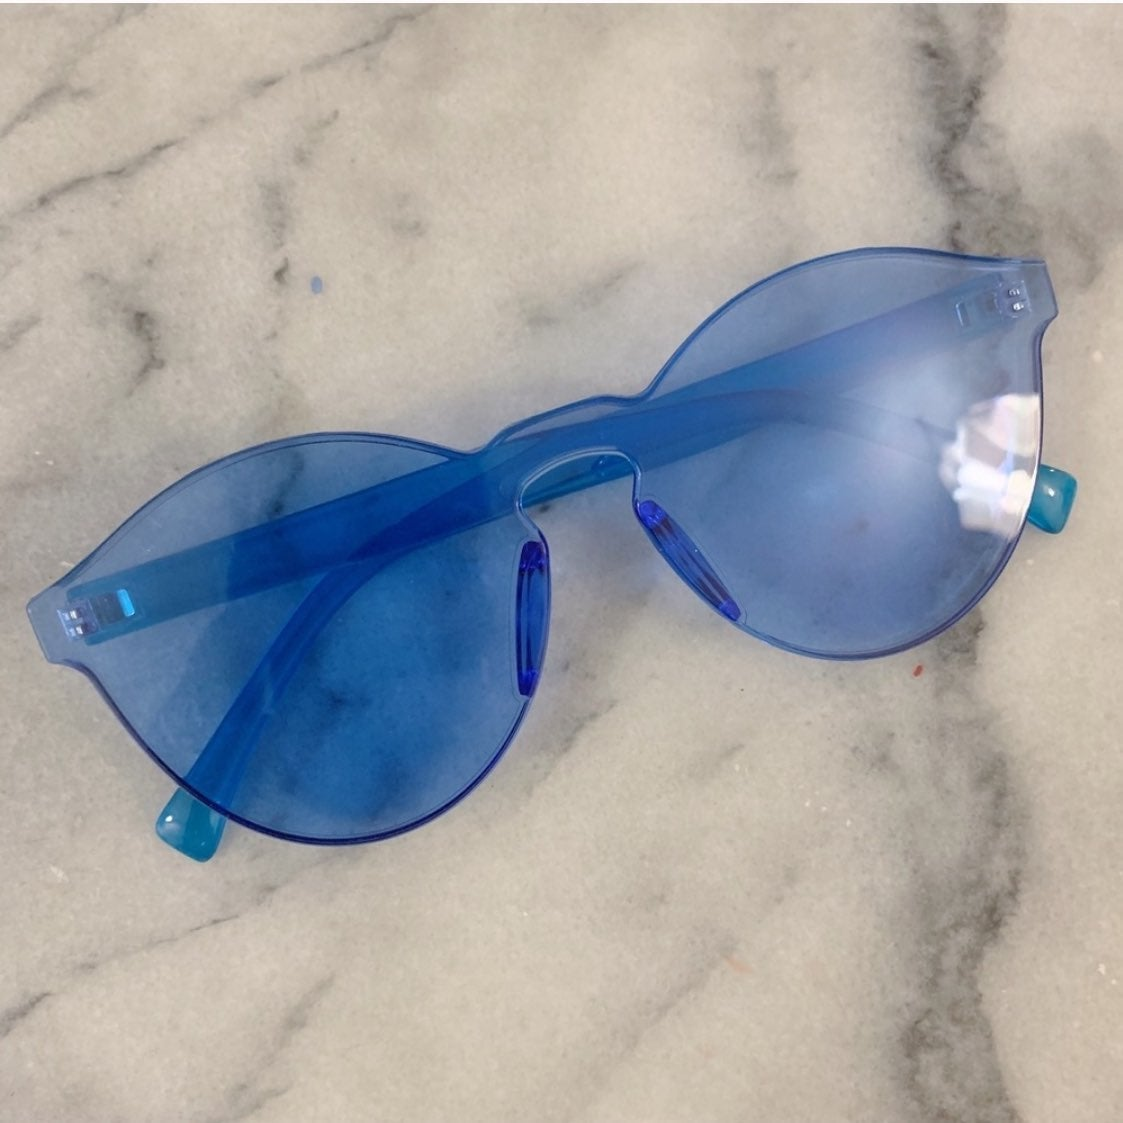 NWT Urban Outfitters Blue Sunglasses